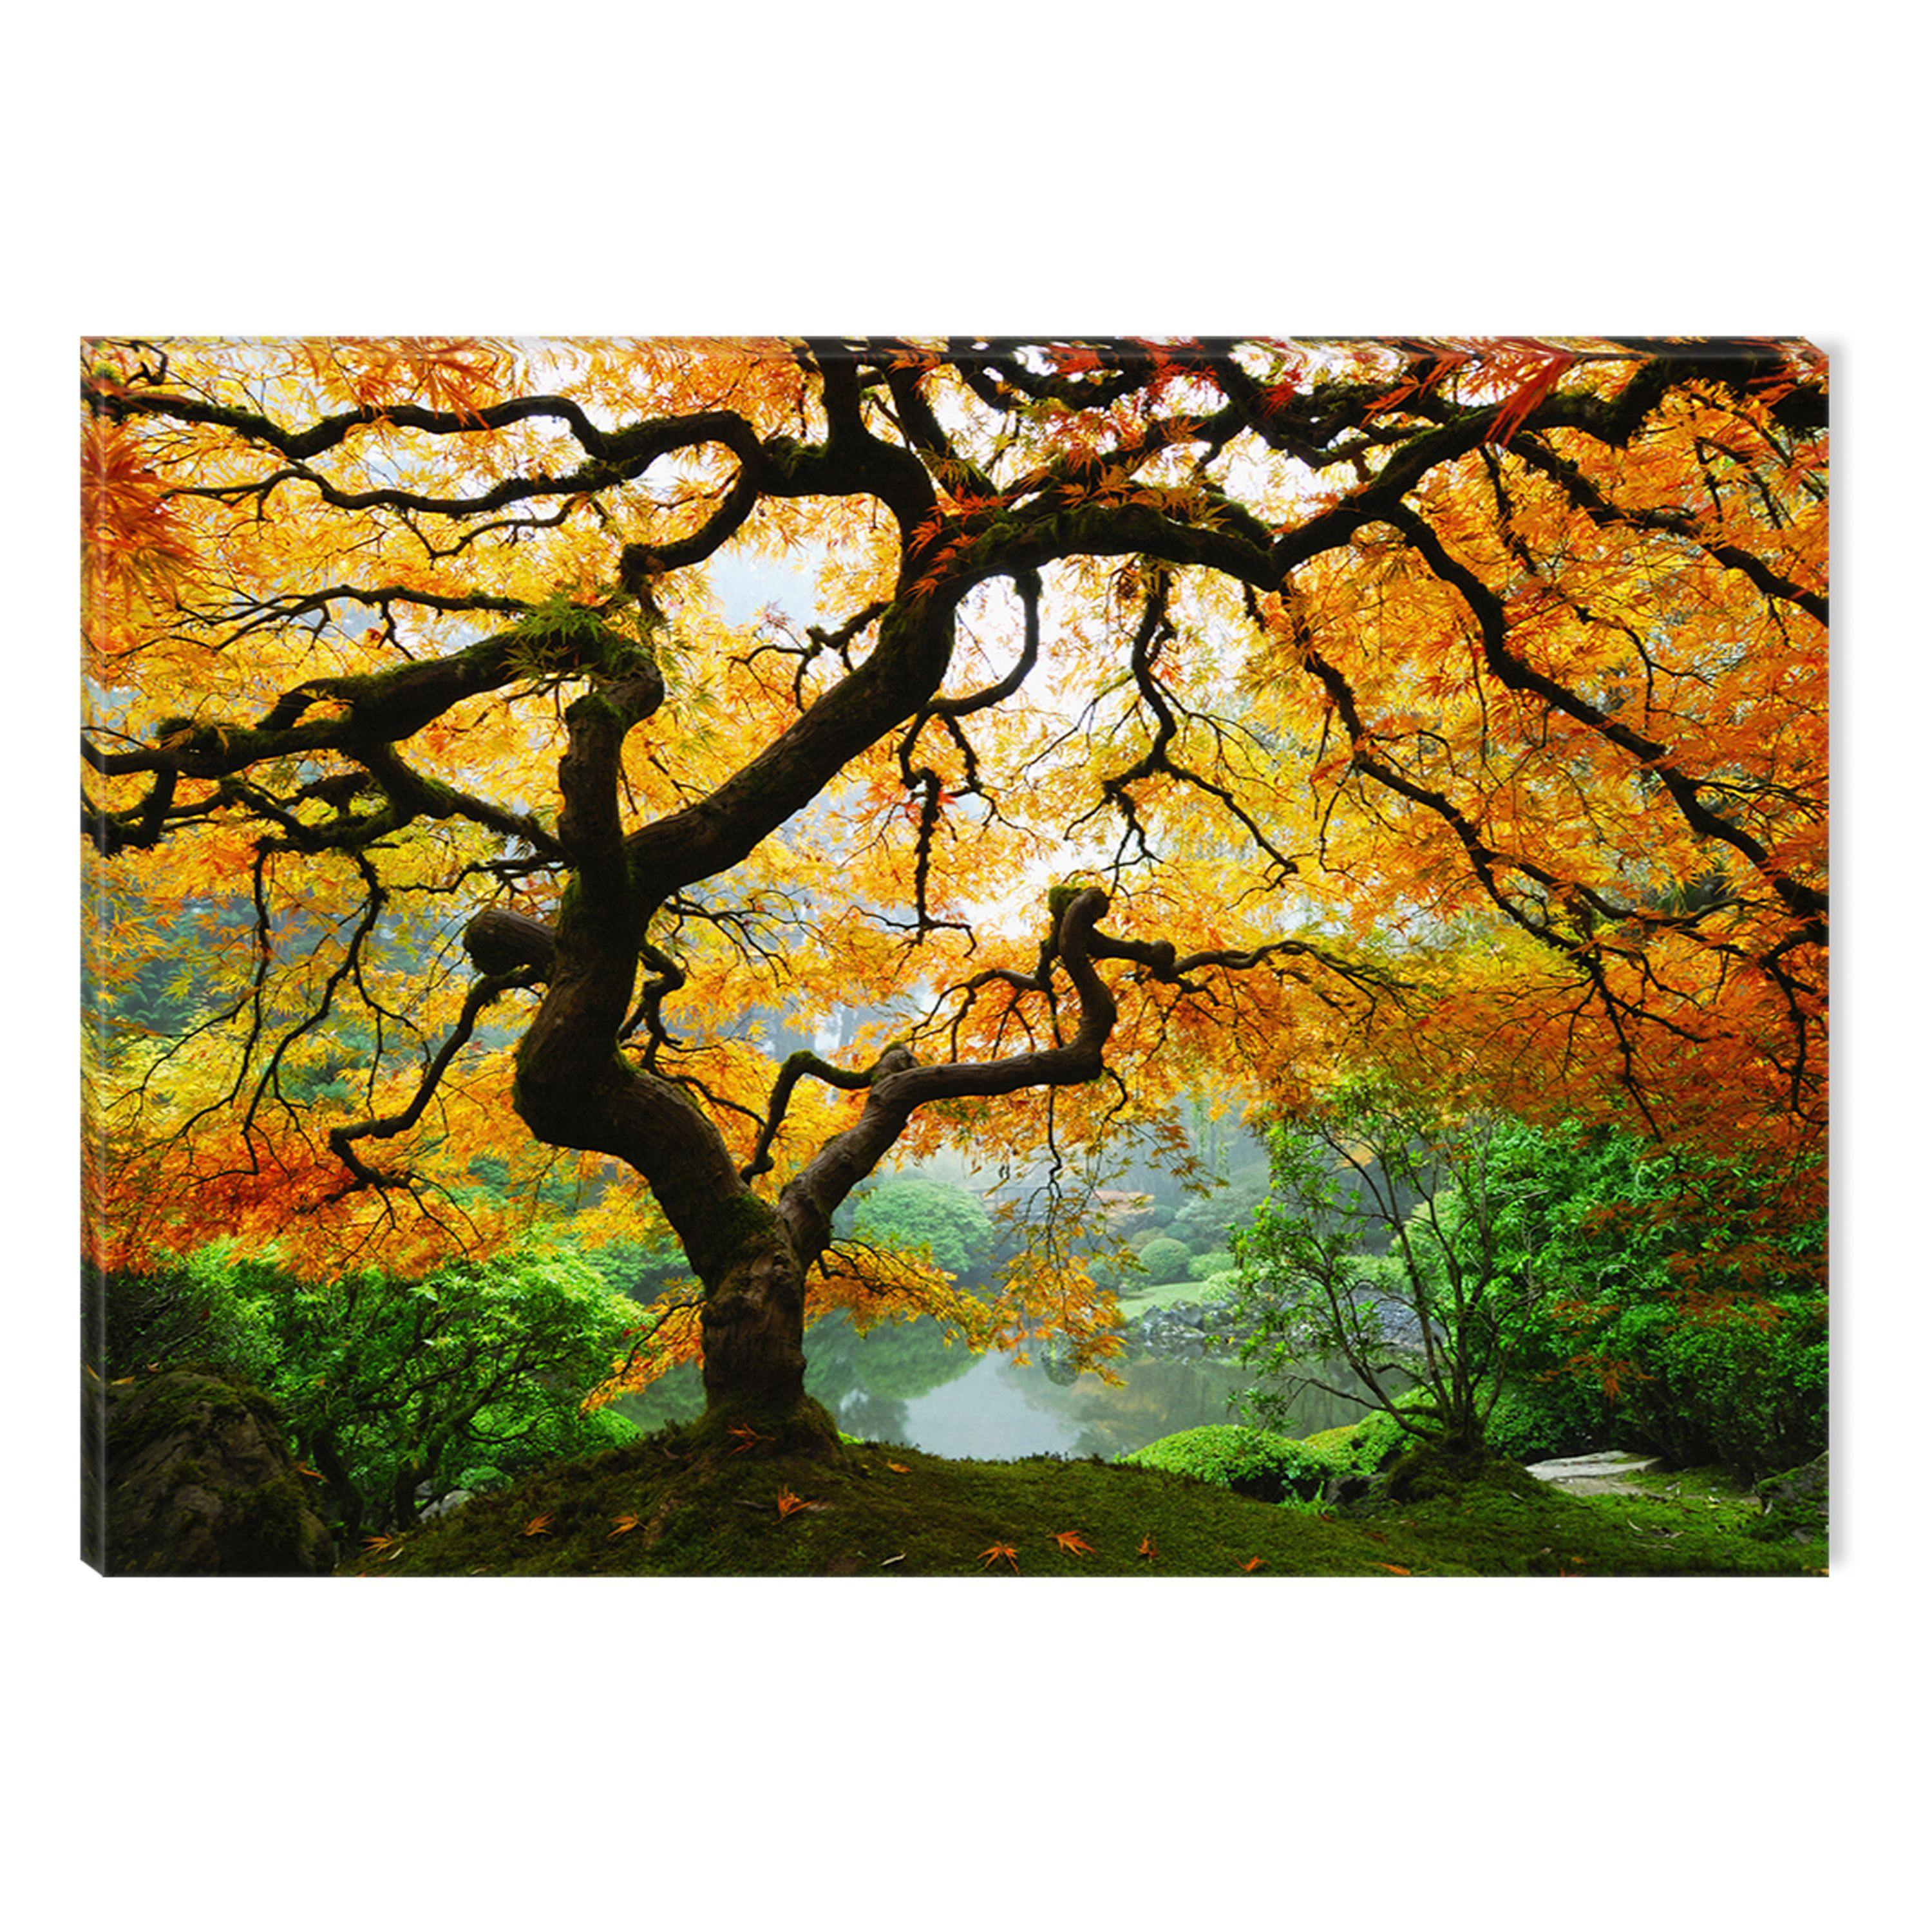 Startonight Canvas Wall Art Maple Tree USA Design for Home Decor, Illuminated Nature Painting Modern Canvas Artwork Framed Ready to Hang Medium 23.62 X 35.43 inch